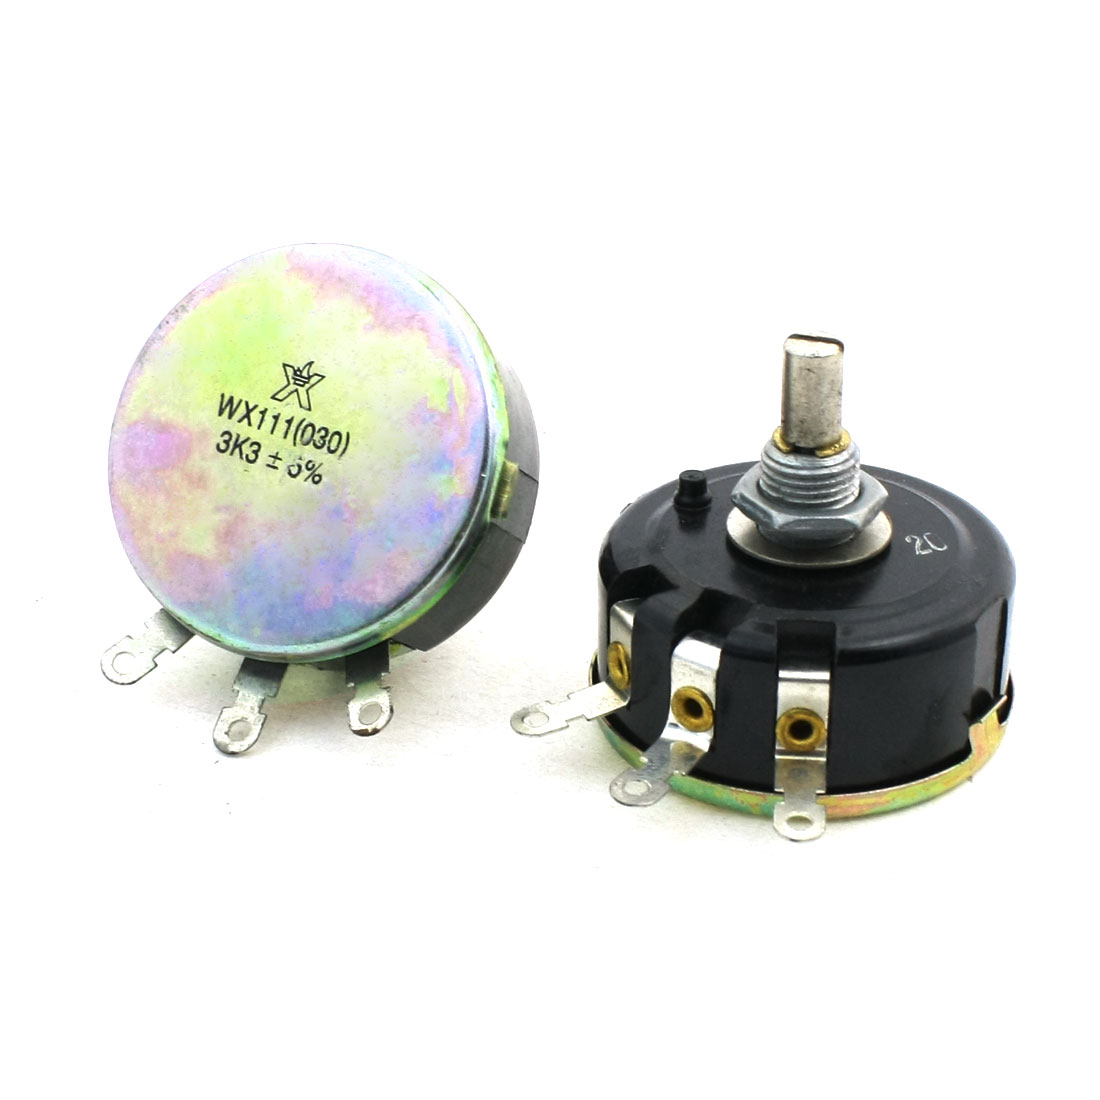 3.3K Ohm Single Turn Carbon Composition Rotary Taper Potentiometer 2Pcs